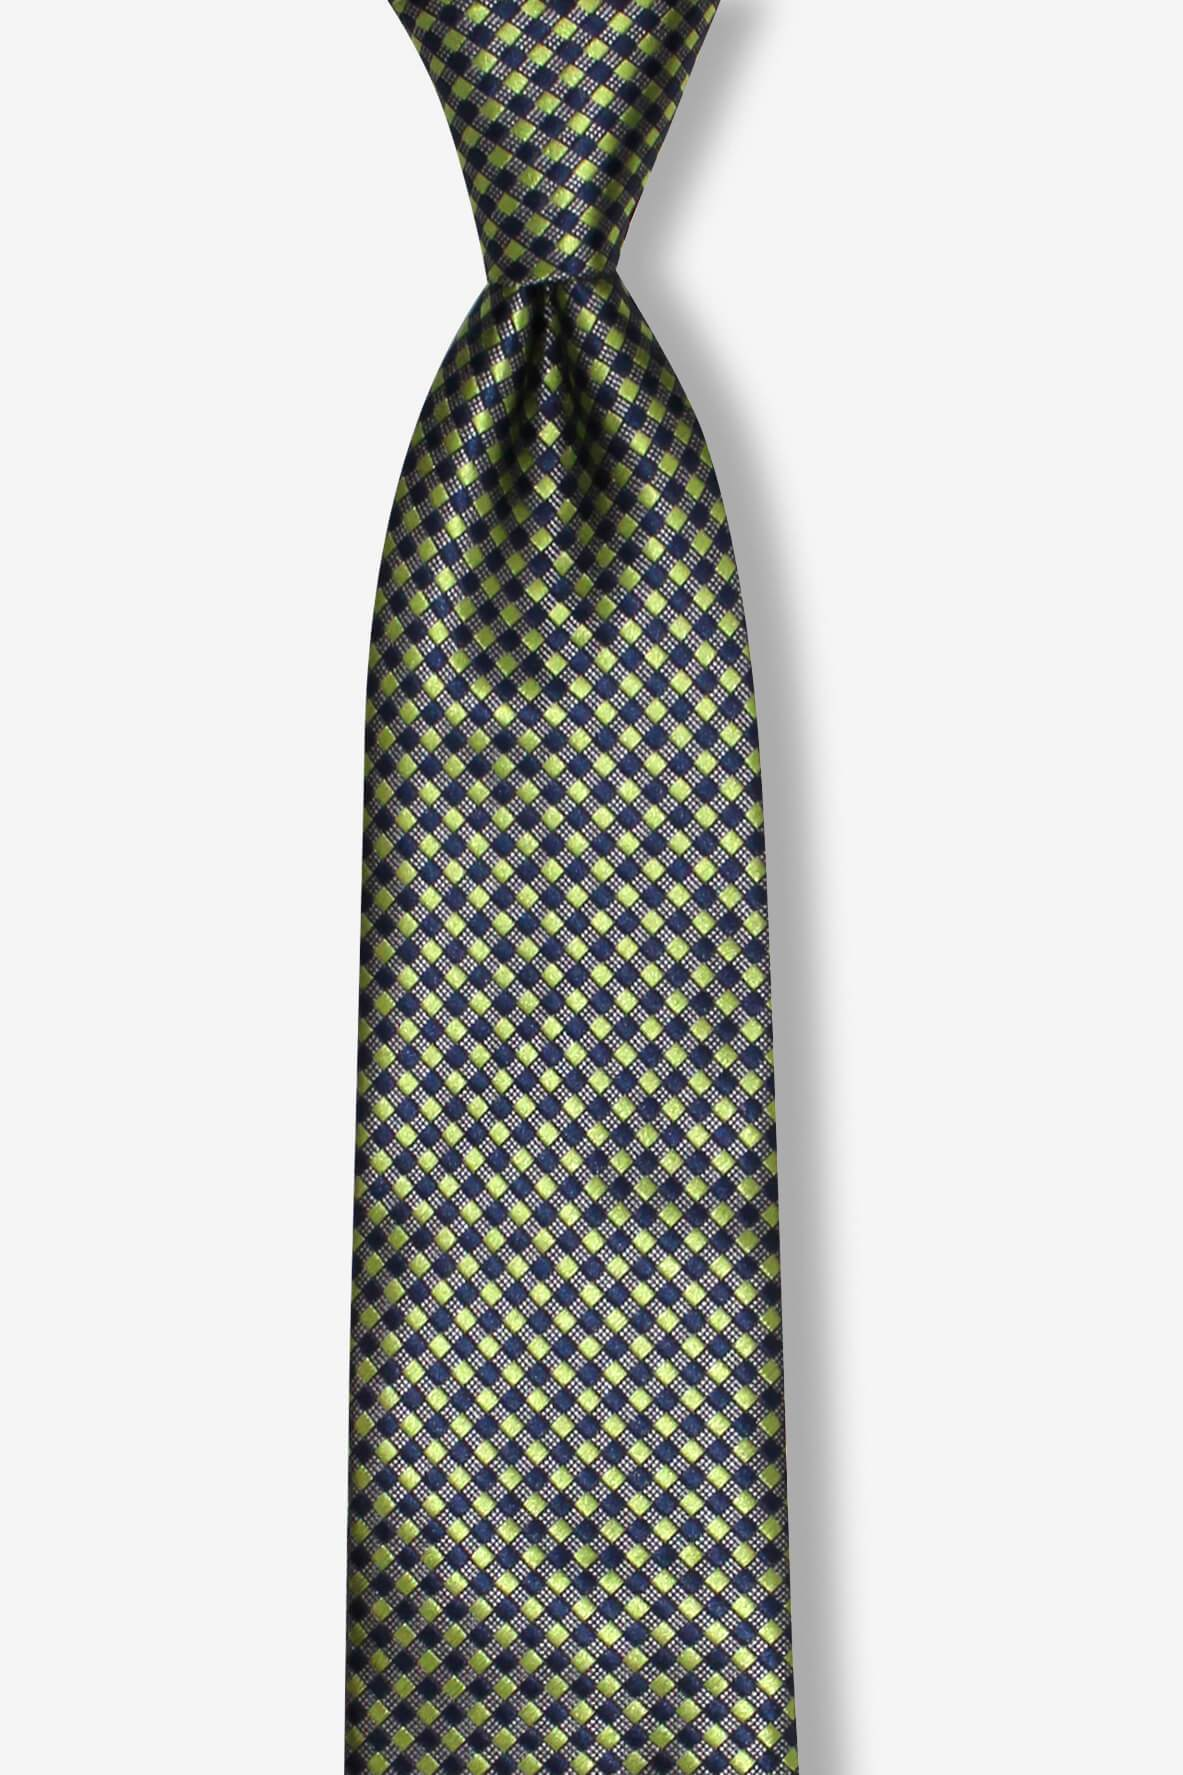 Green Blue Small Checkered Skinny Pre-tied Tie, Tie, GoTie